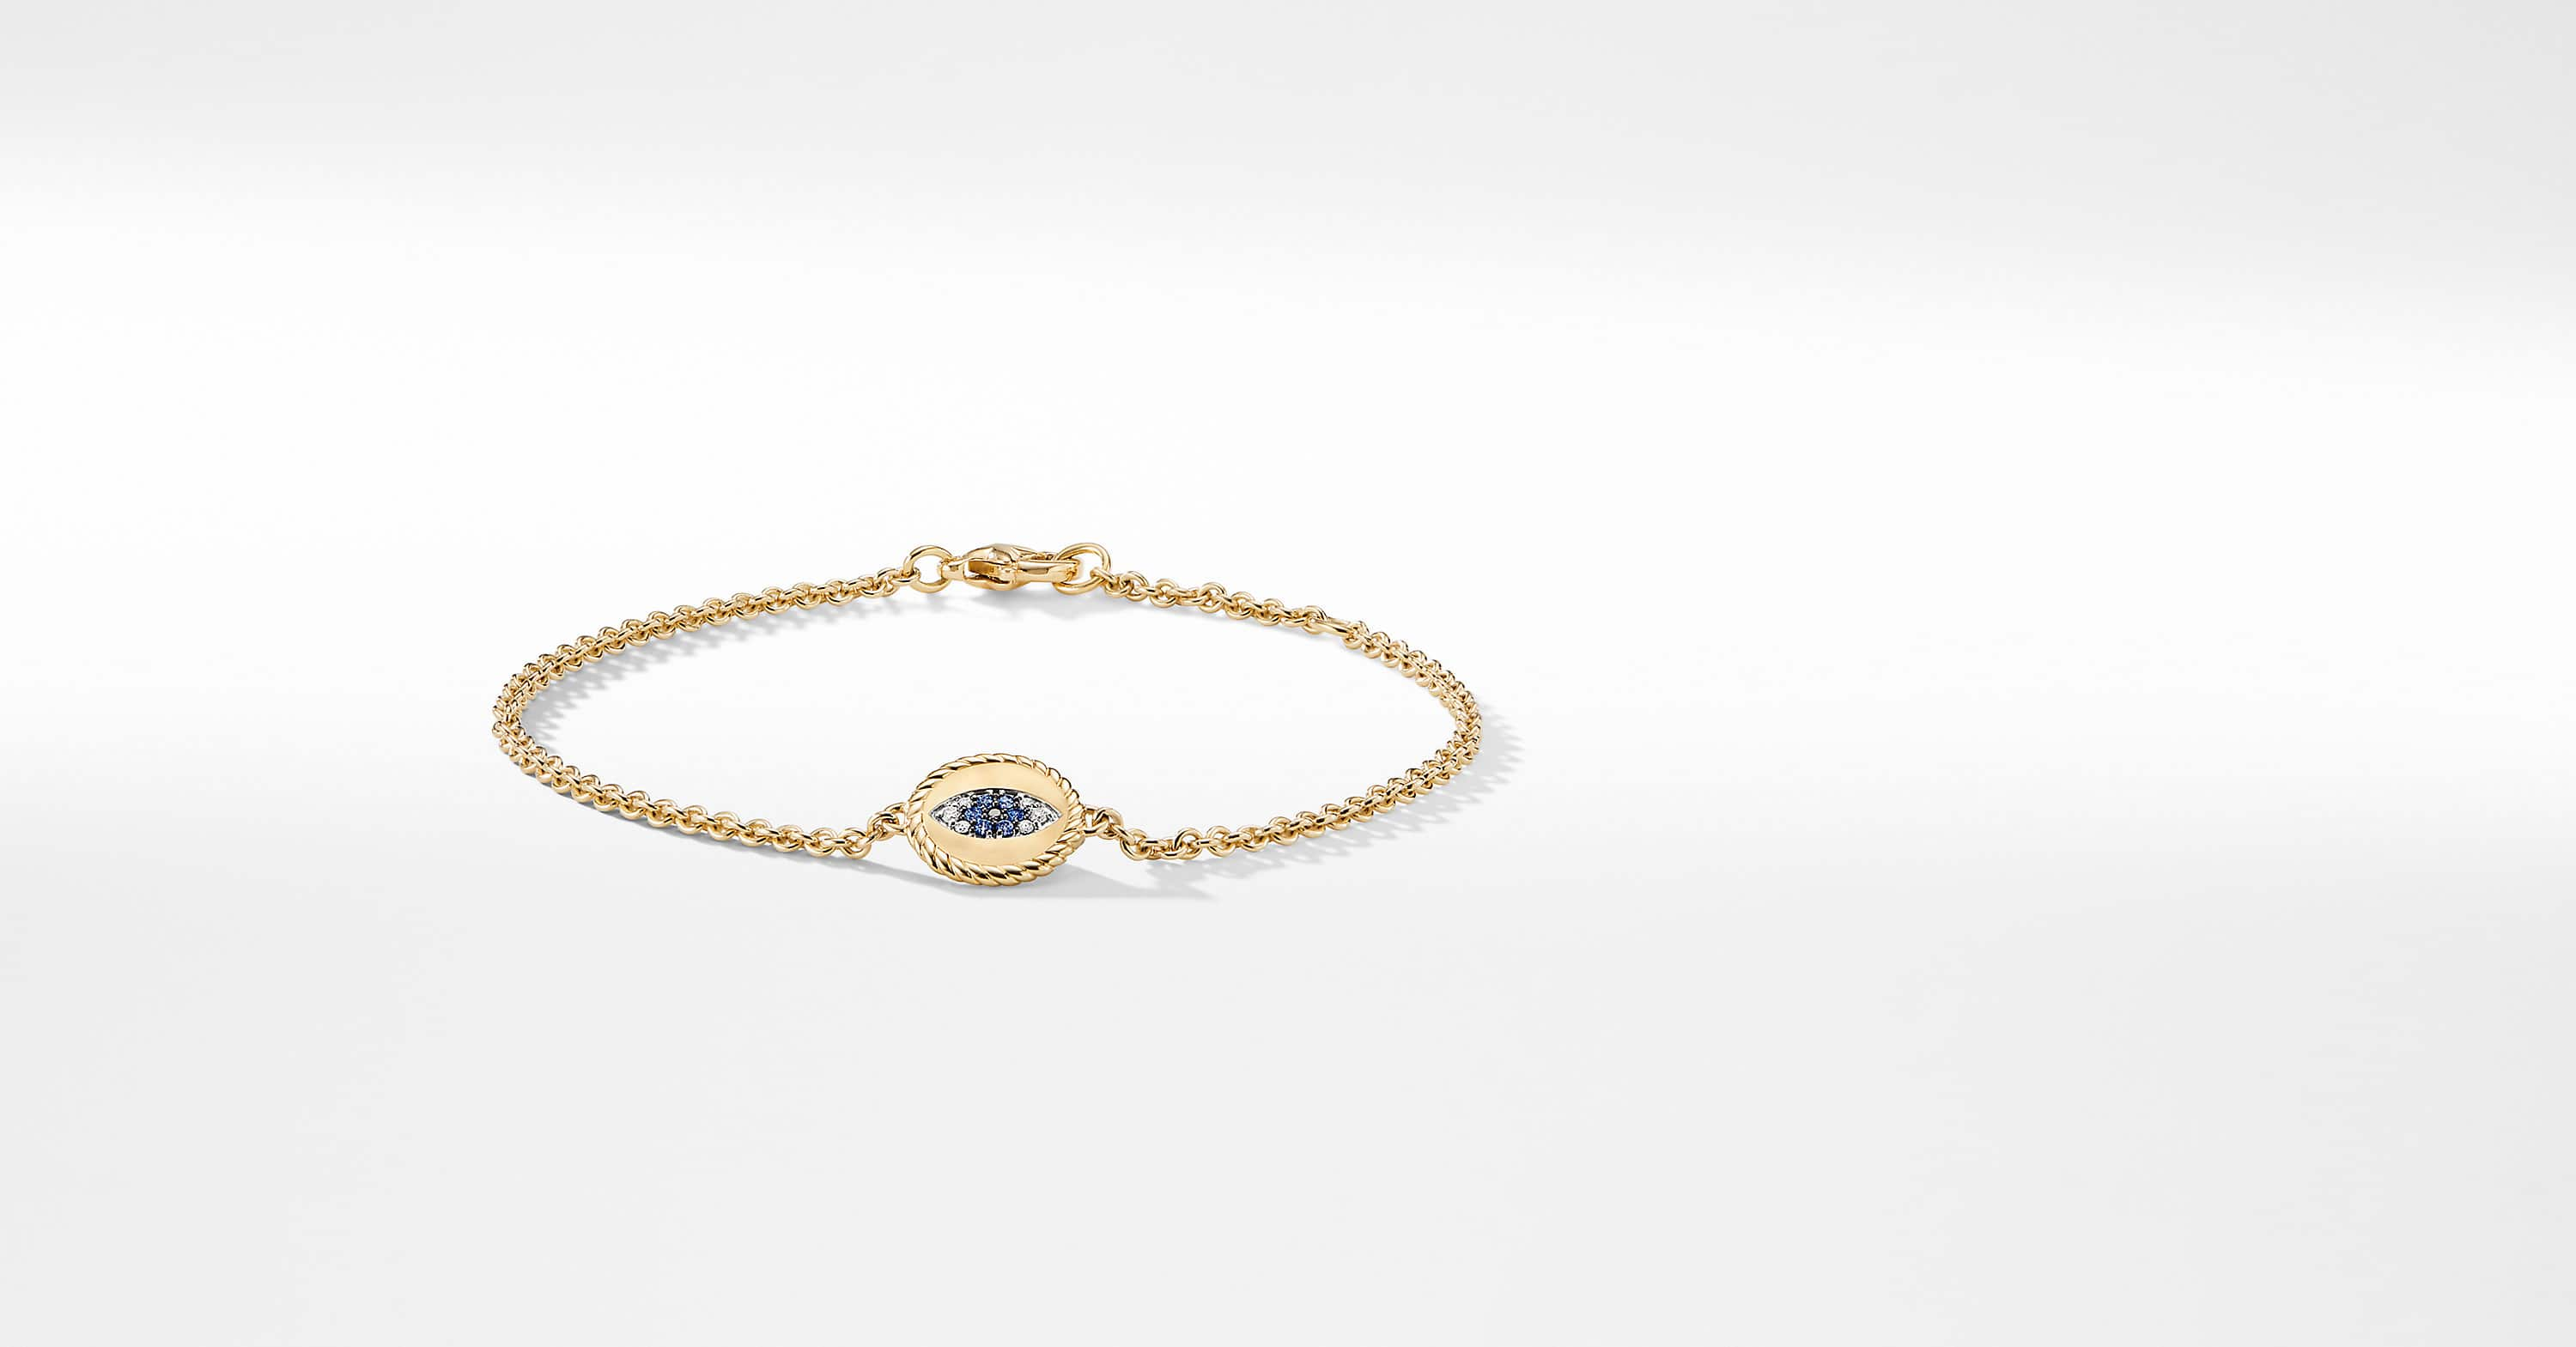 Pave Cable Evil Eye Charm with Diamonds in 18K Gold